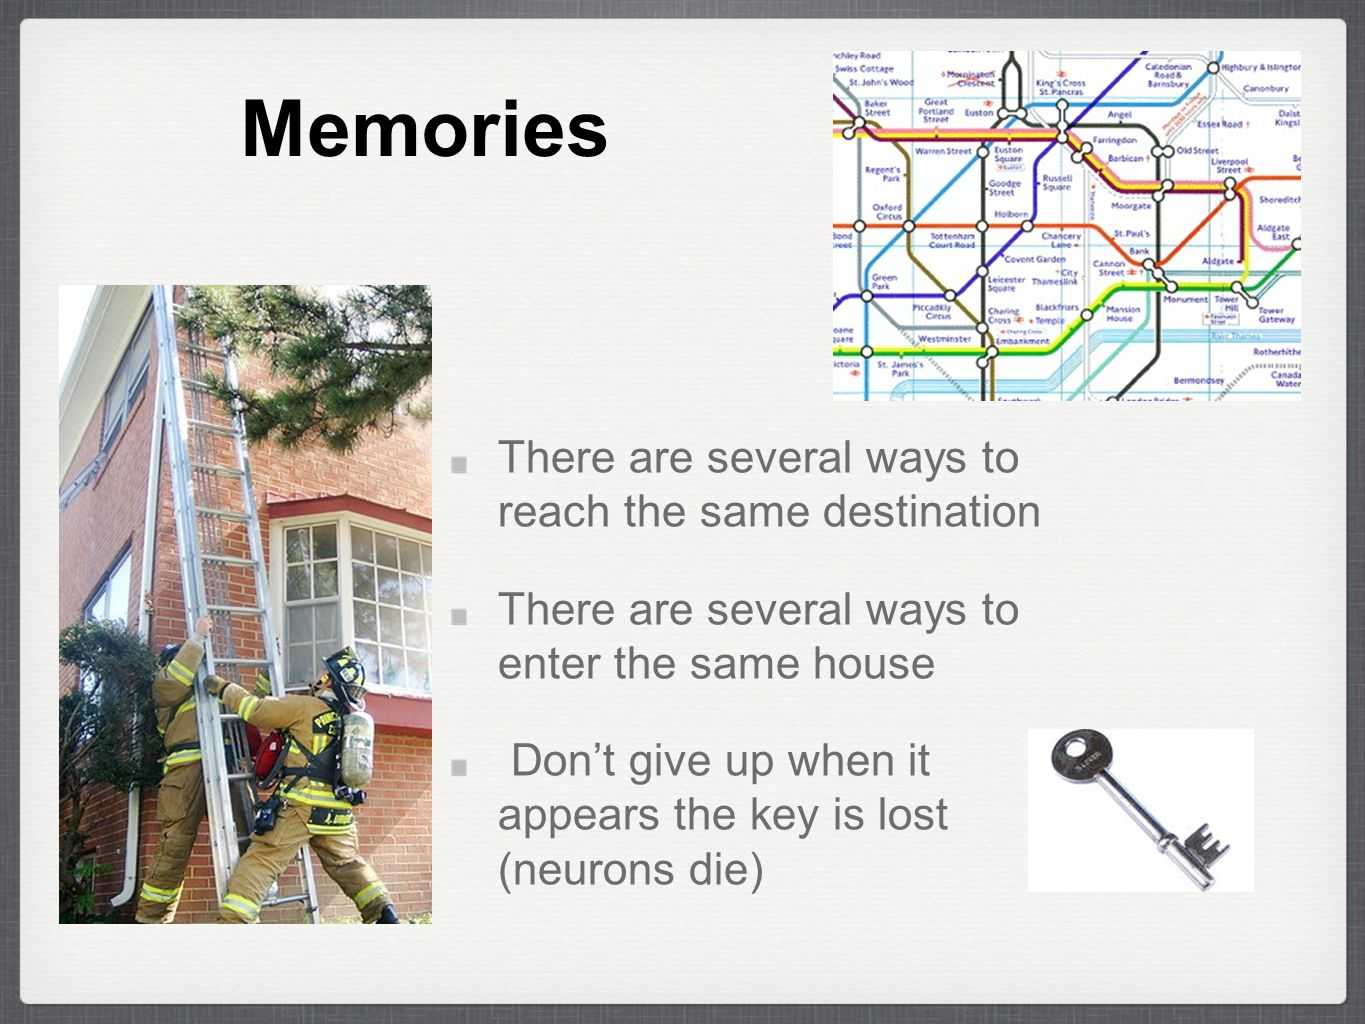 Memories There are several ways to reach the same destination There are several ways to enter the same house Don't give up when it appears the key is lost (neurons die)